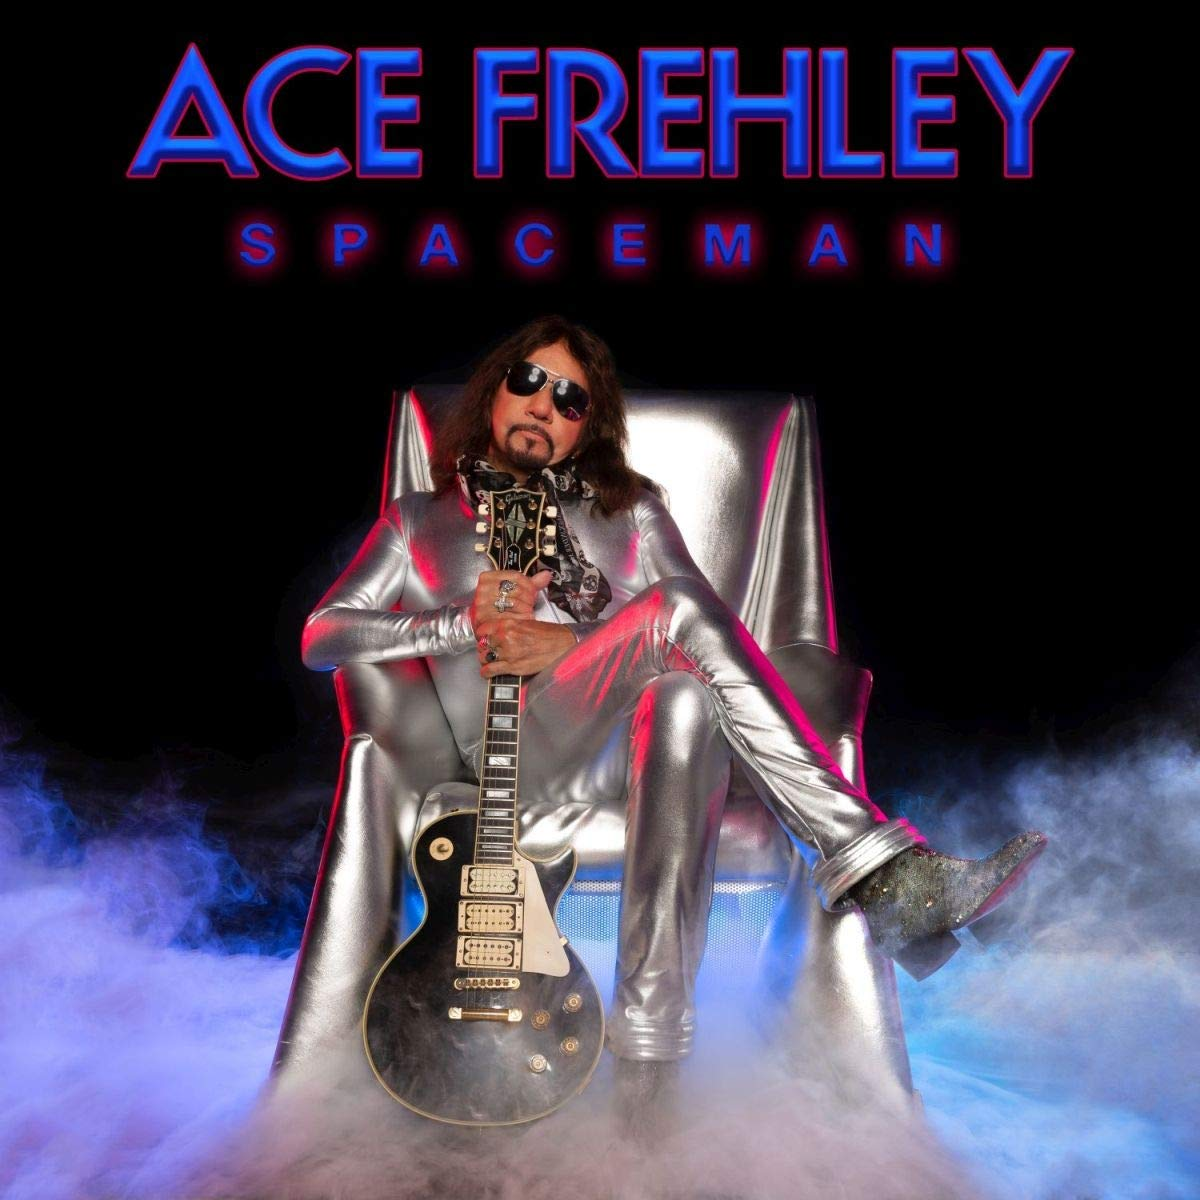 CD : Ace Frehley - Spaceman (CD)